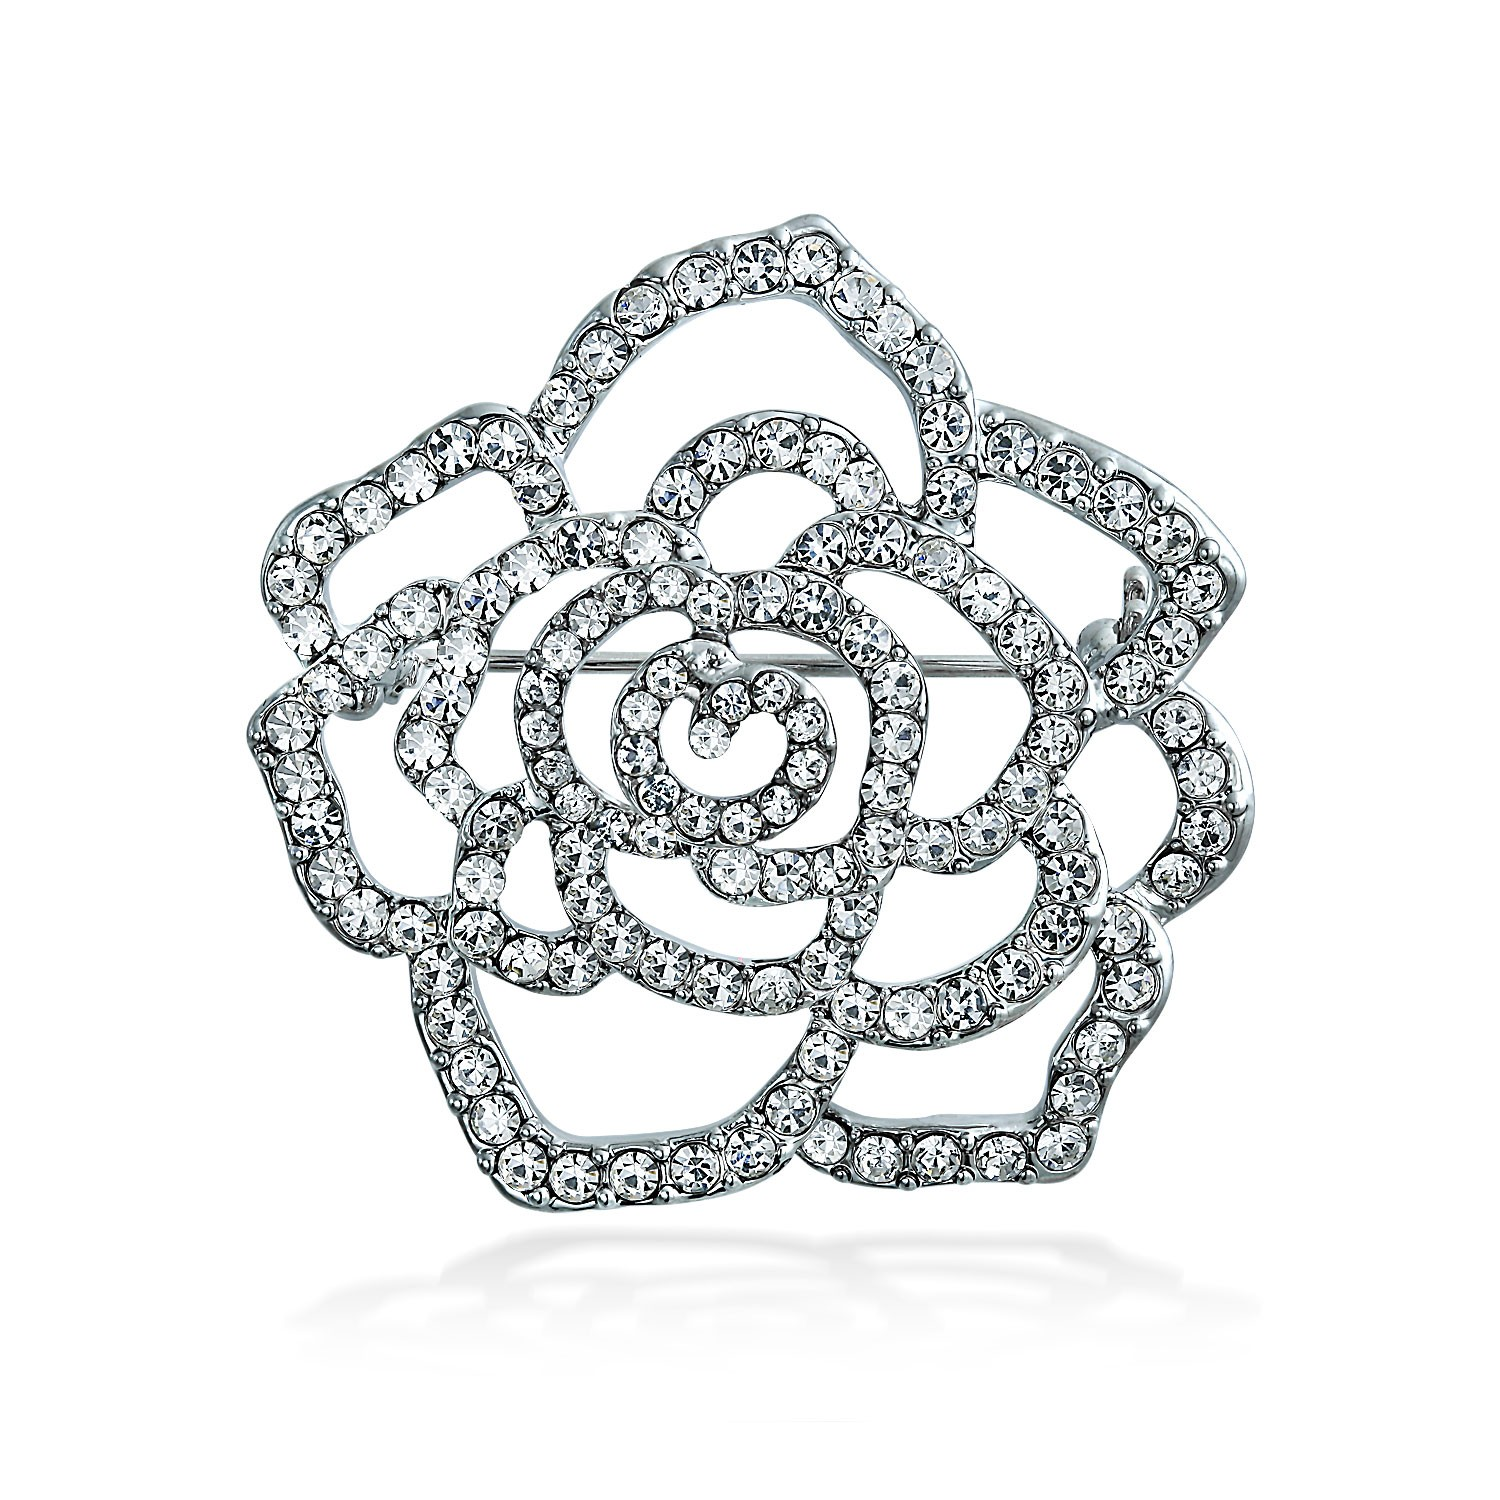 1500x1500 Pave Clear Crystal Outline Flower Brooch Rose Pin